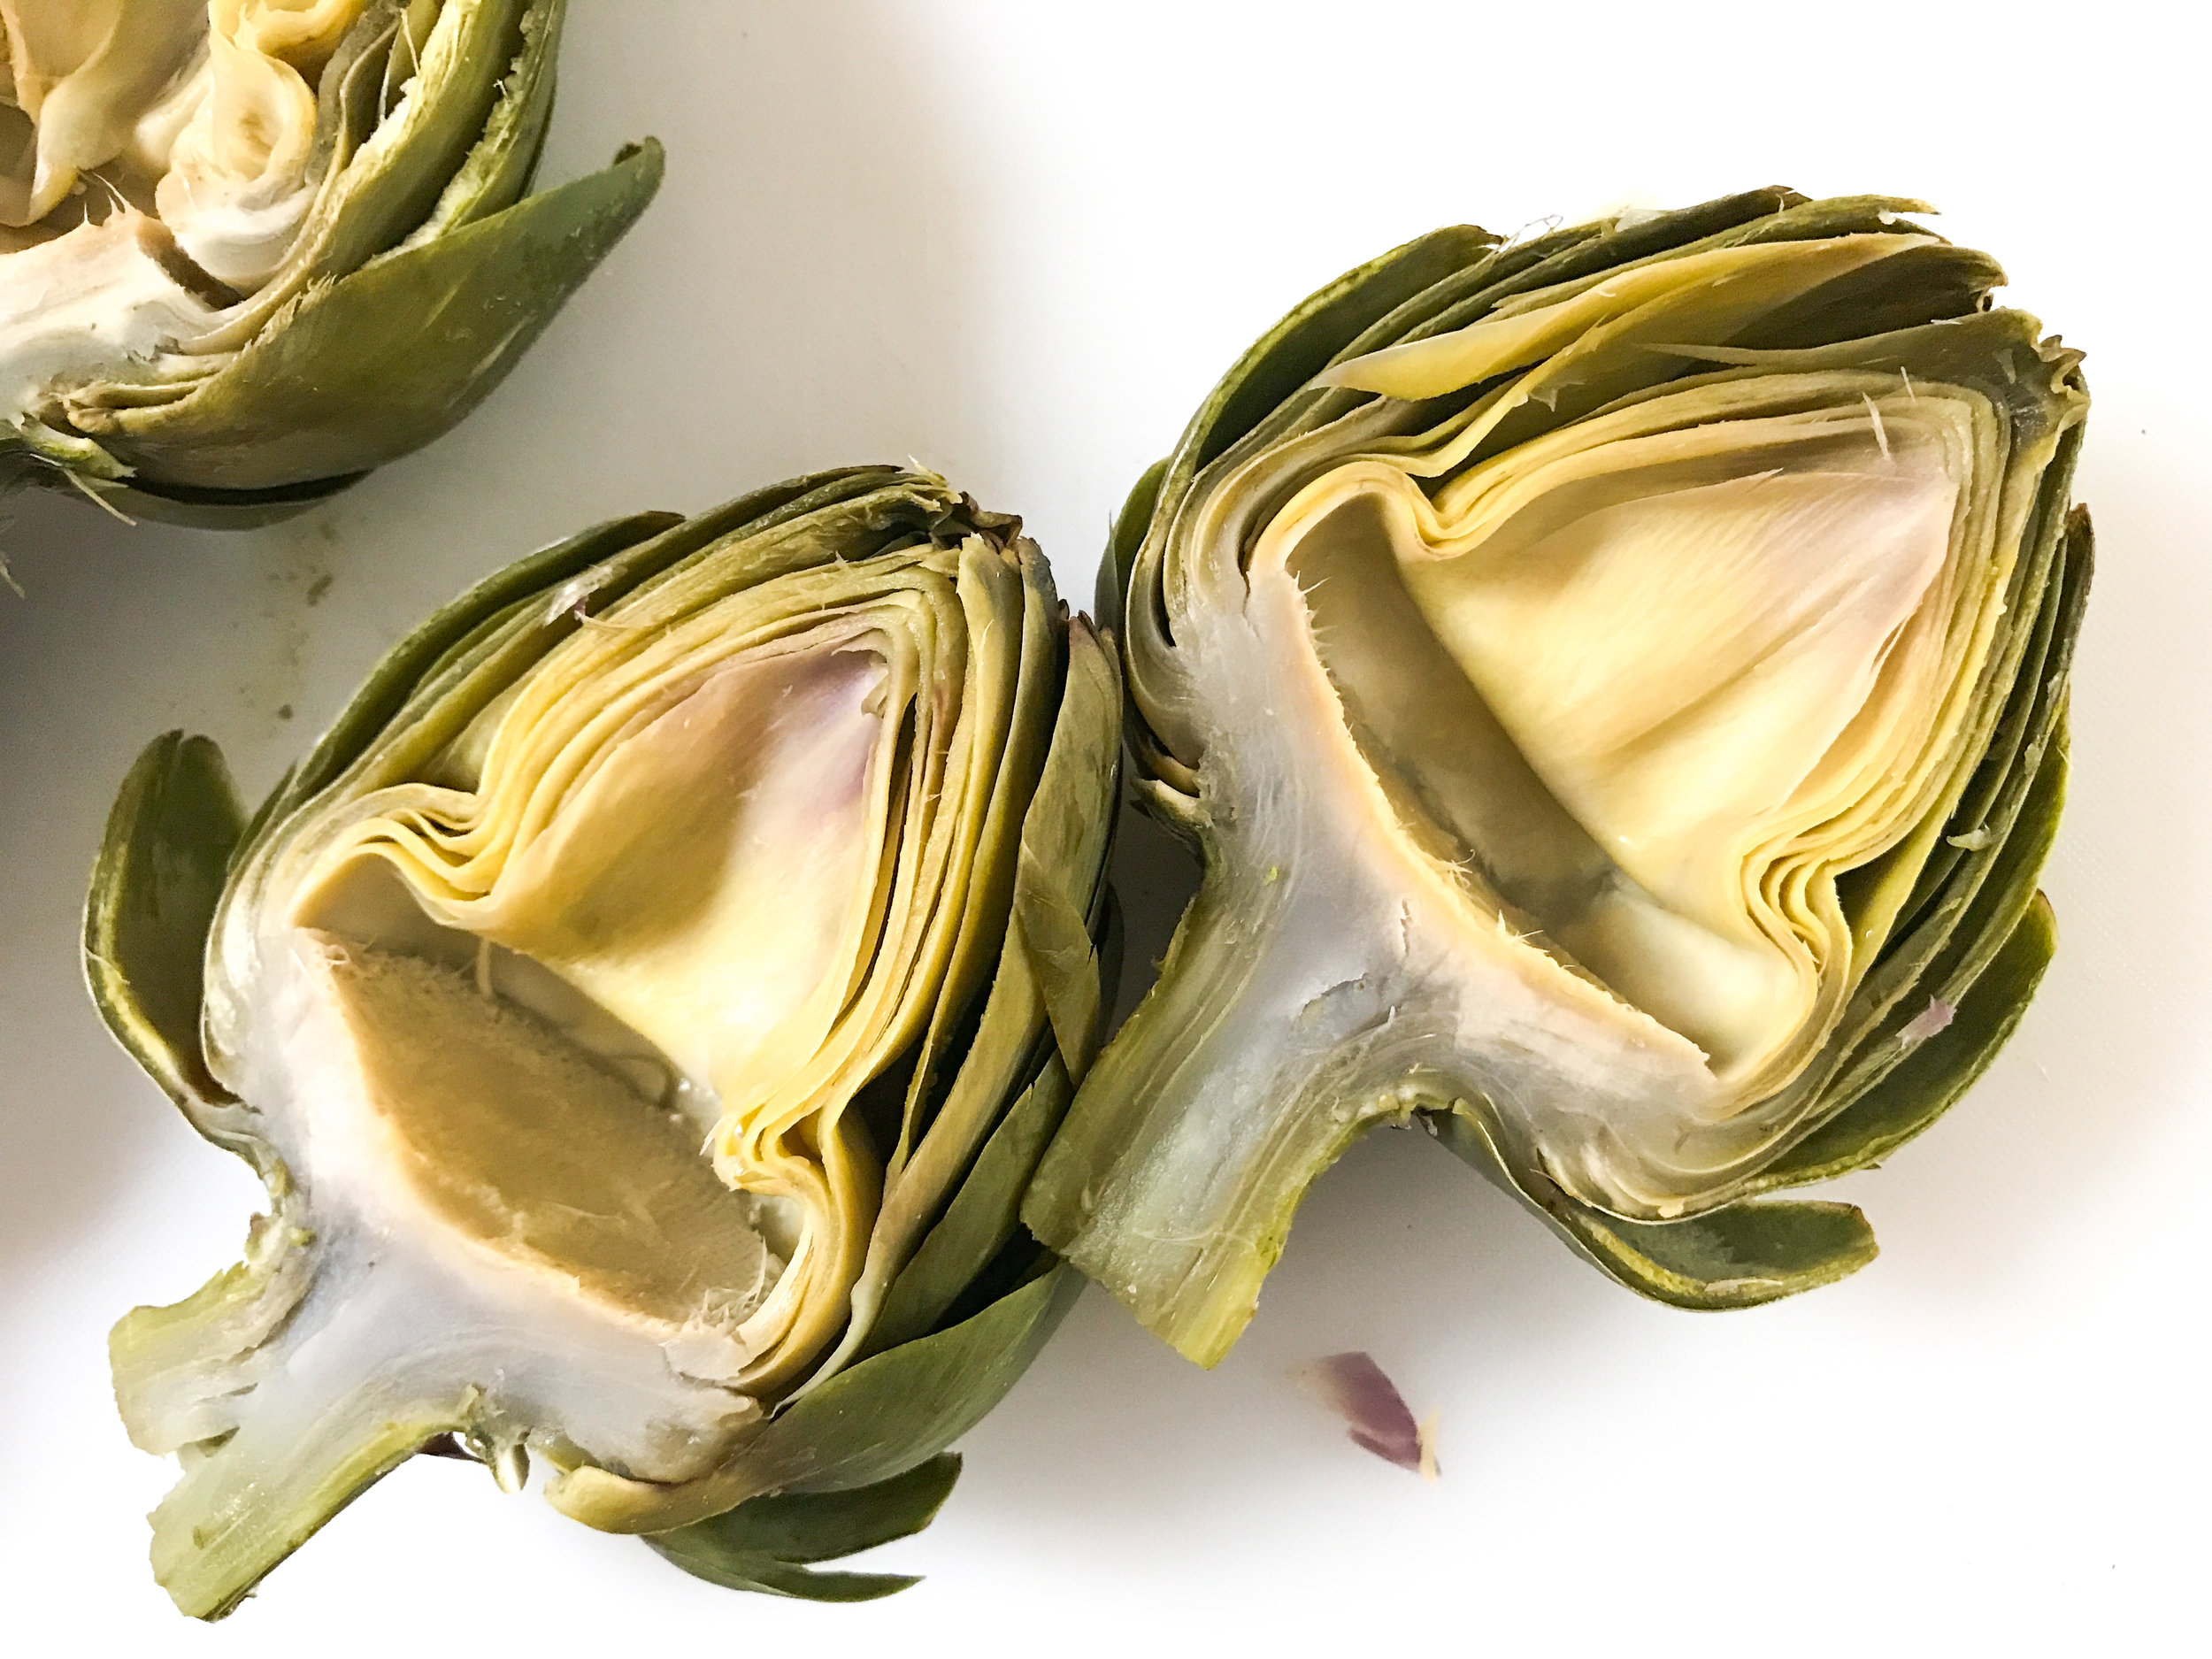 The boiled artichoke halves, after the fuzzy chokes and spiky inner leaves have been scooped out.